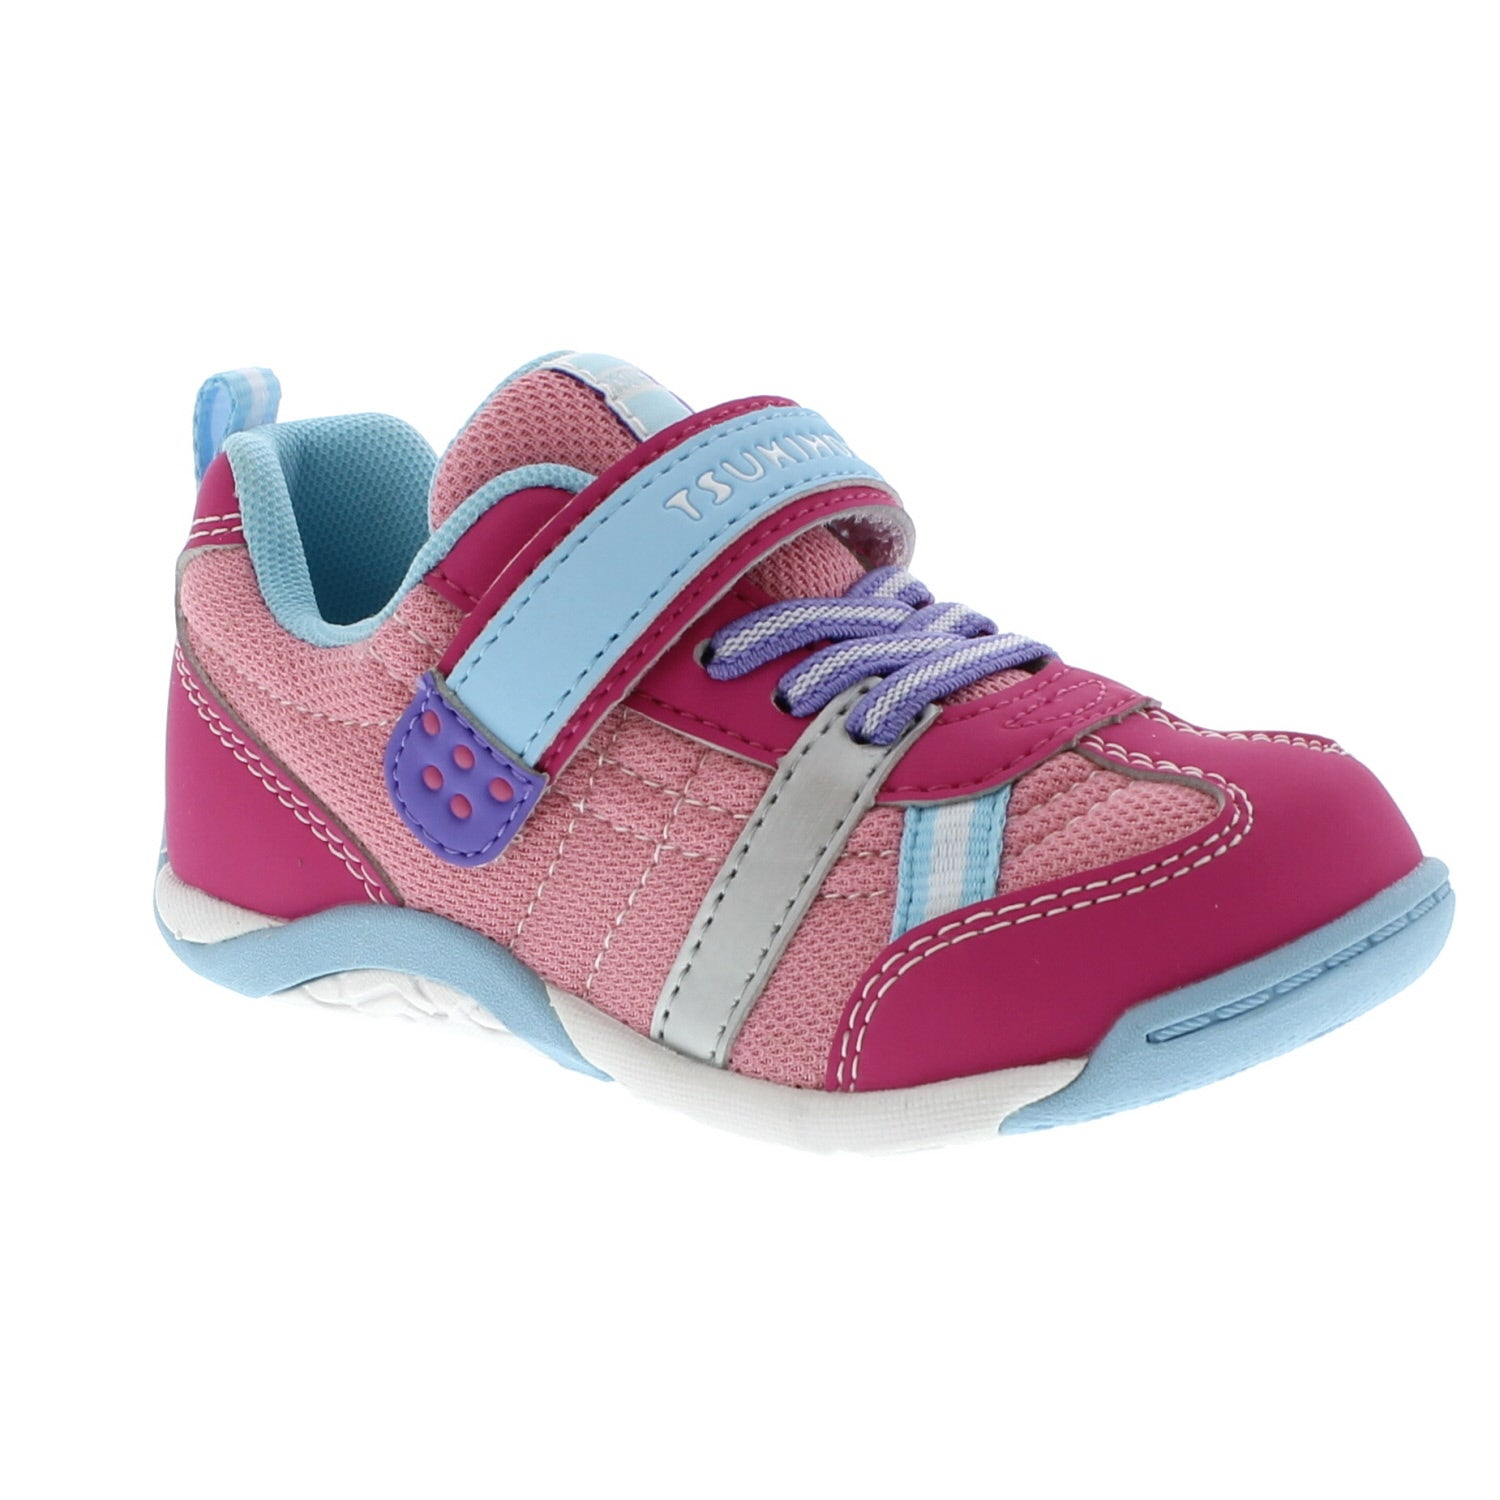 Tsukihoshi Kaz in Fuchsia/Lt. Blue -  - Little Feet Childrens Shoes  - 1